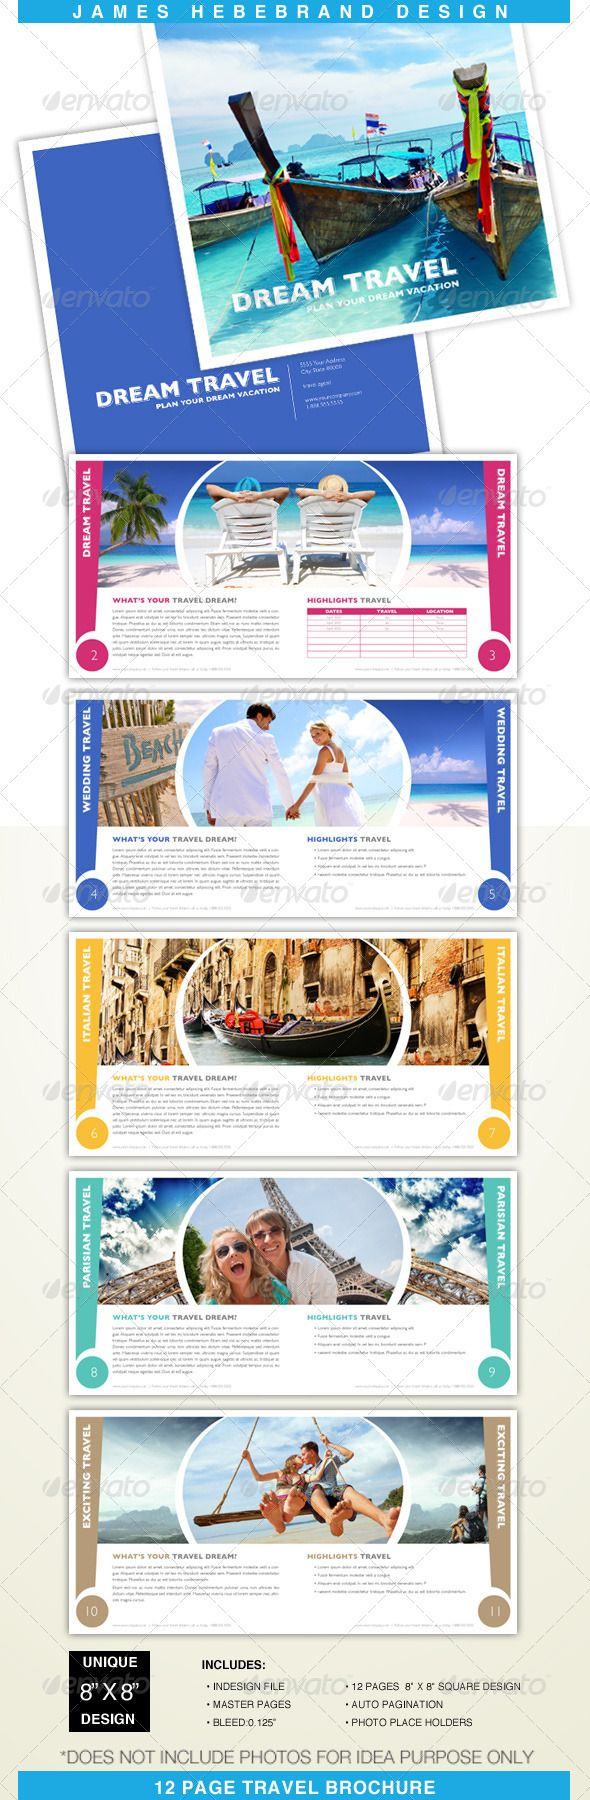 Travel Brochure Template  Travel Brochures    Travel